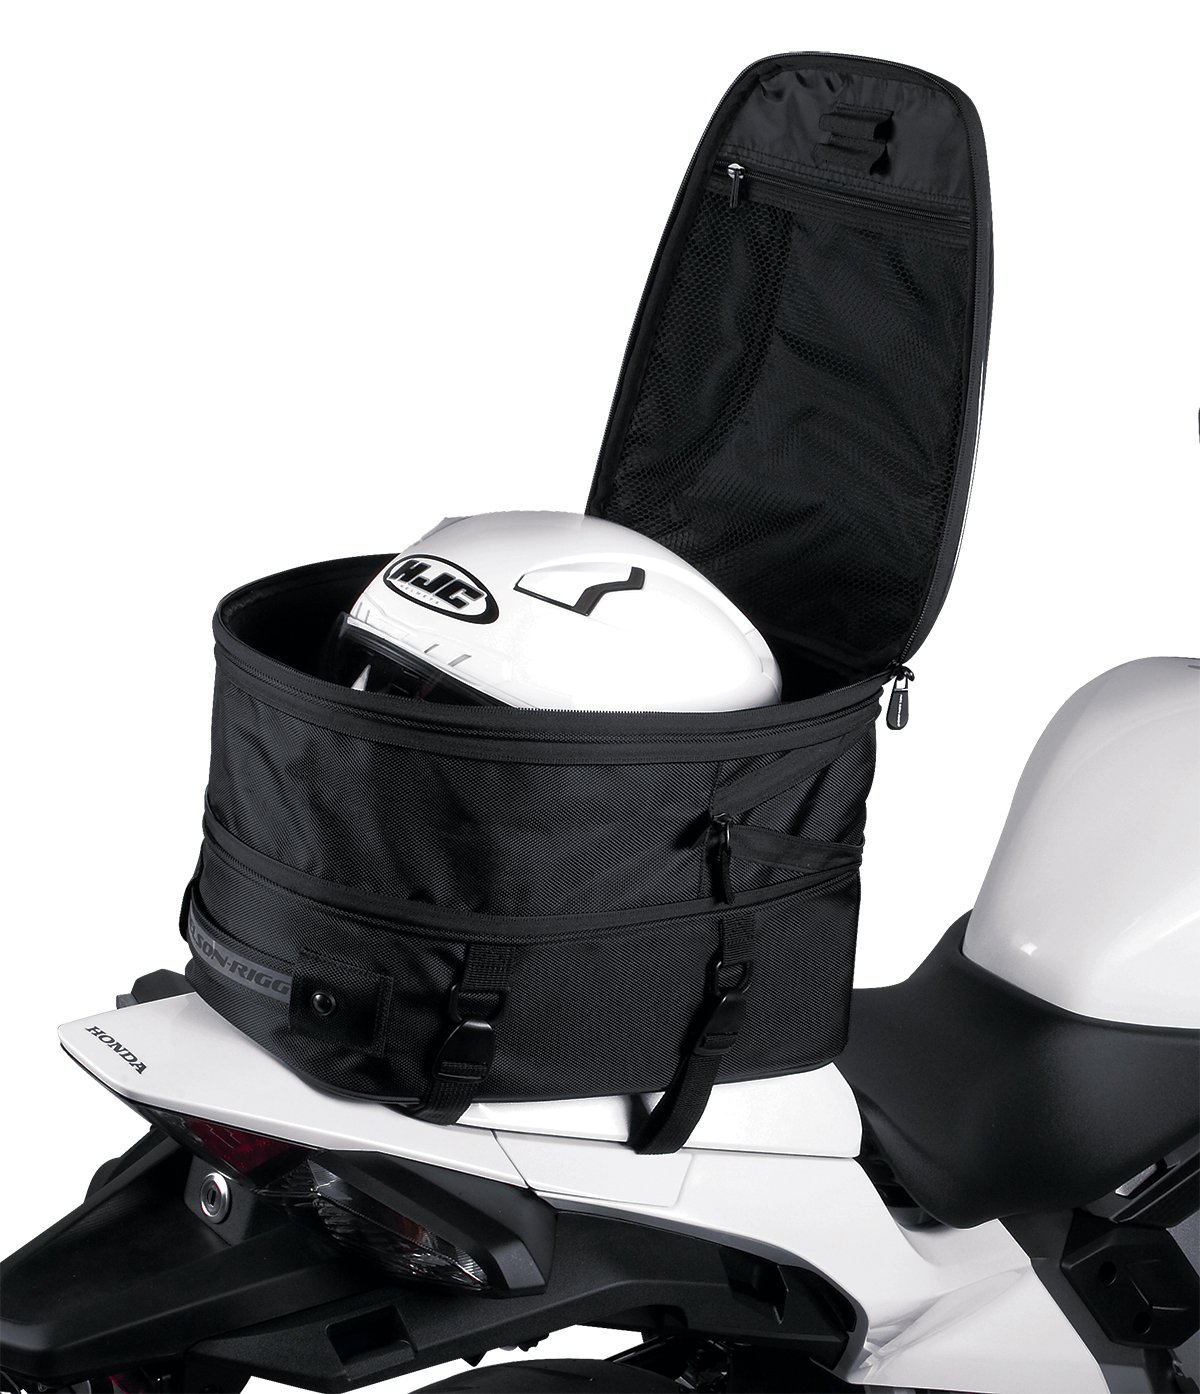 Nelson Rigg CL-1060-ST Sport Touring Motorcycle Tail/Seat Bag by Nelson-Rigg (Image #2)